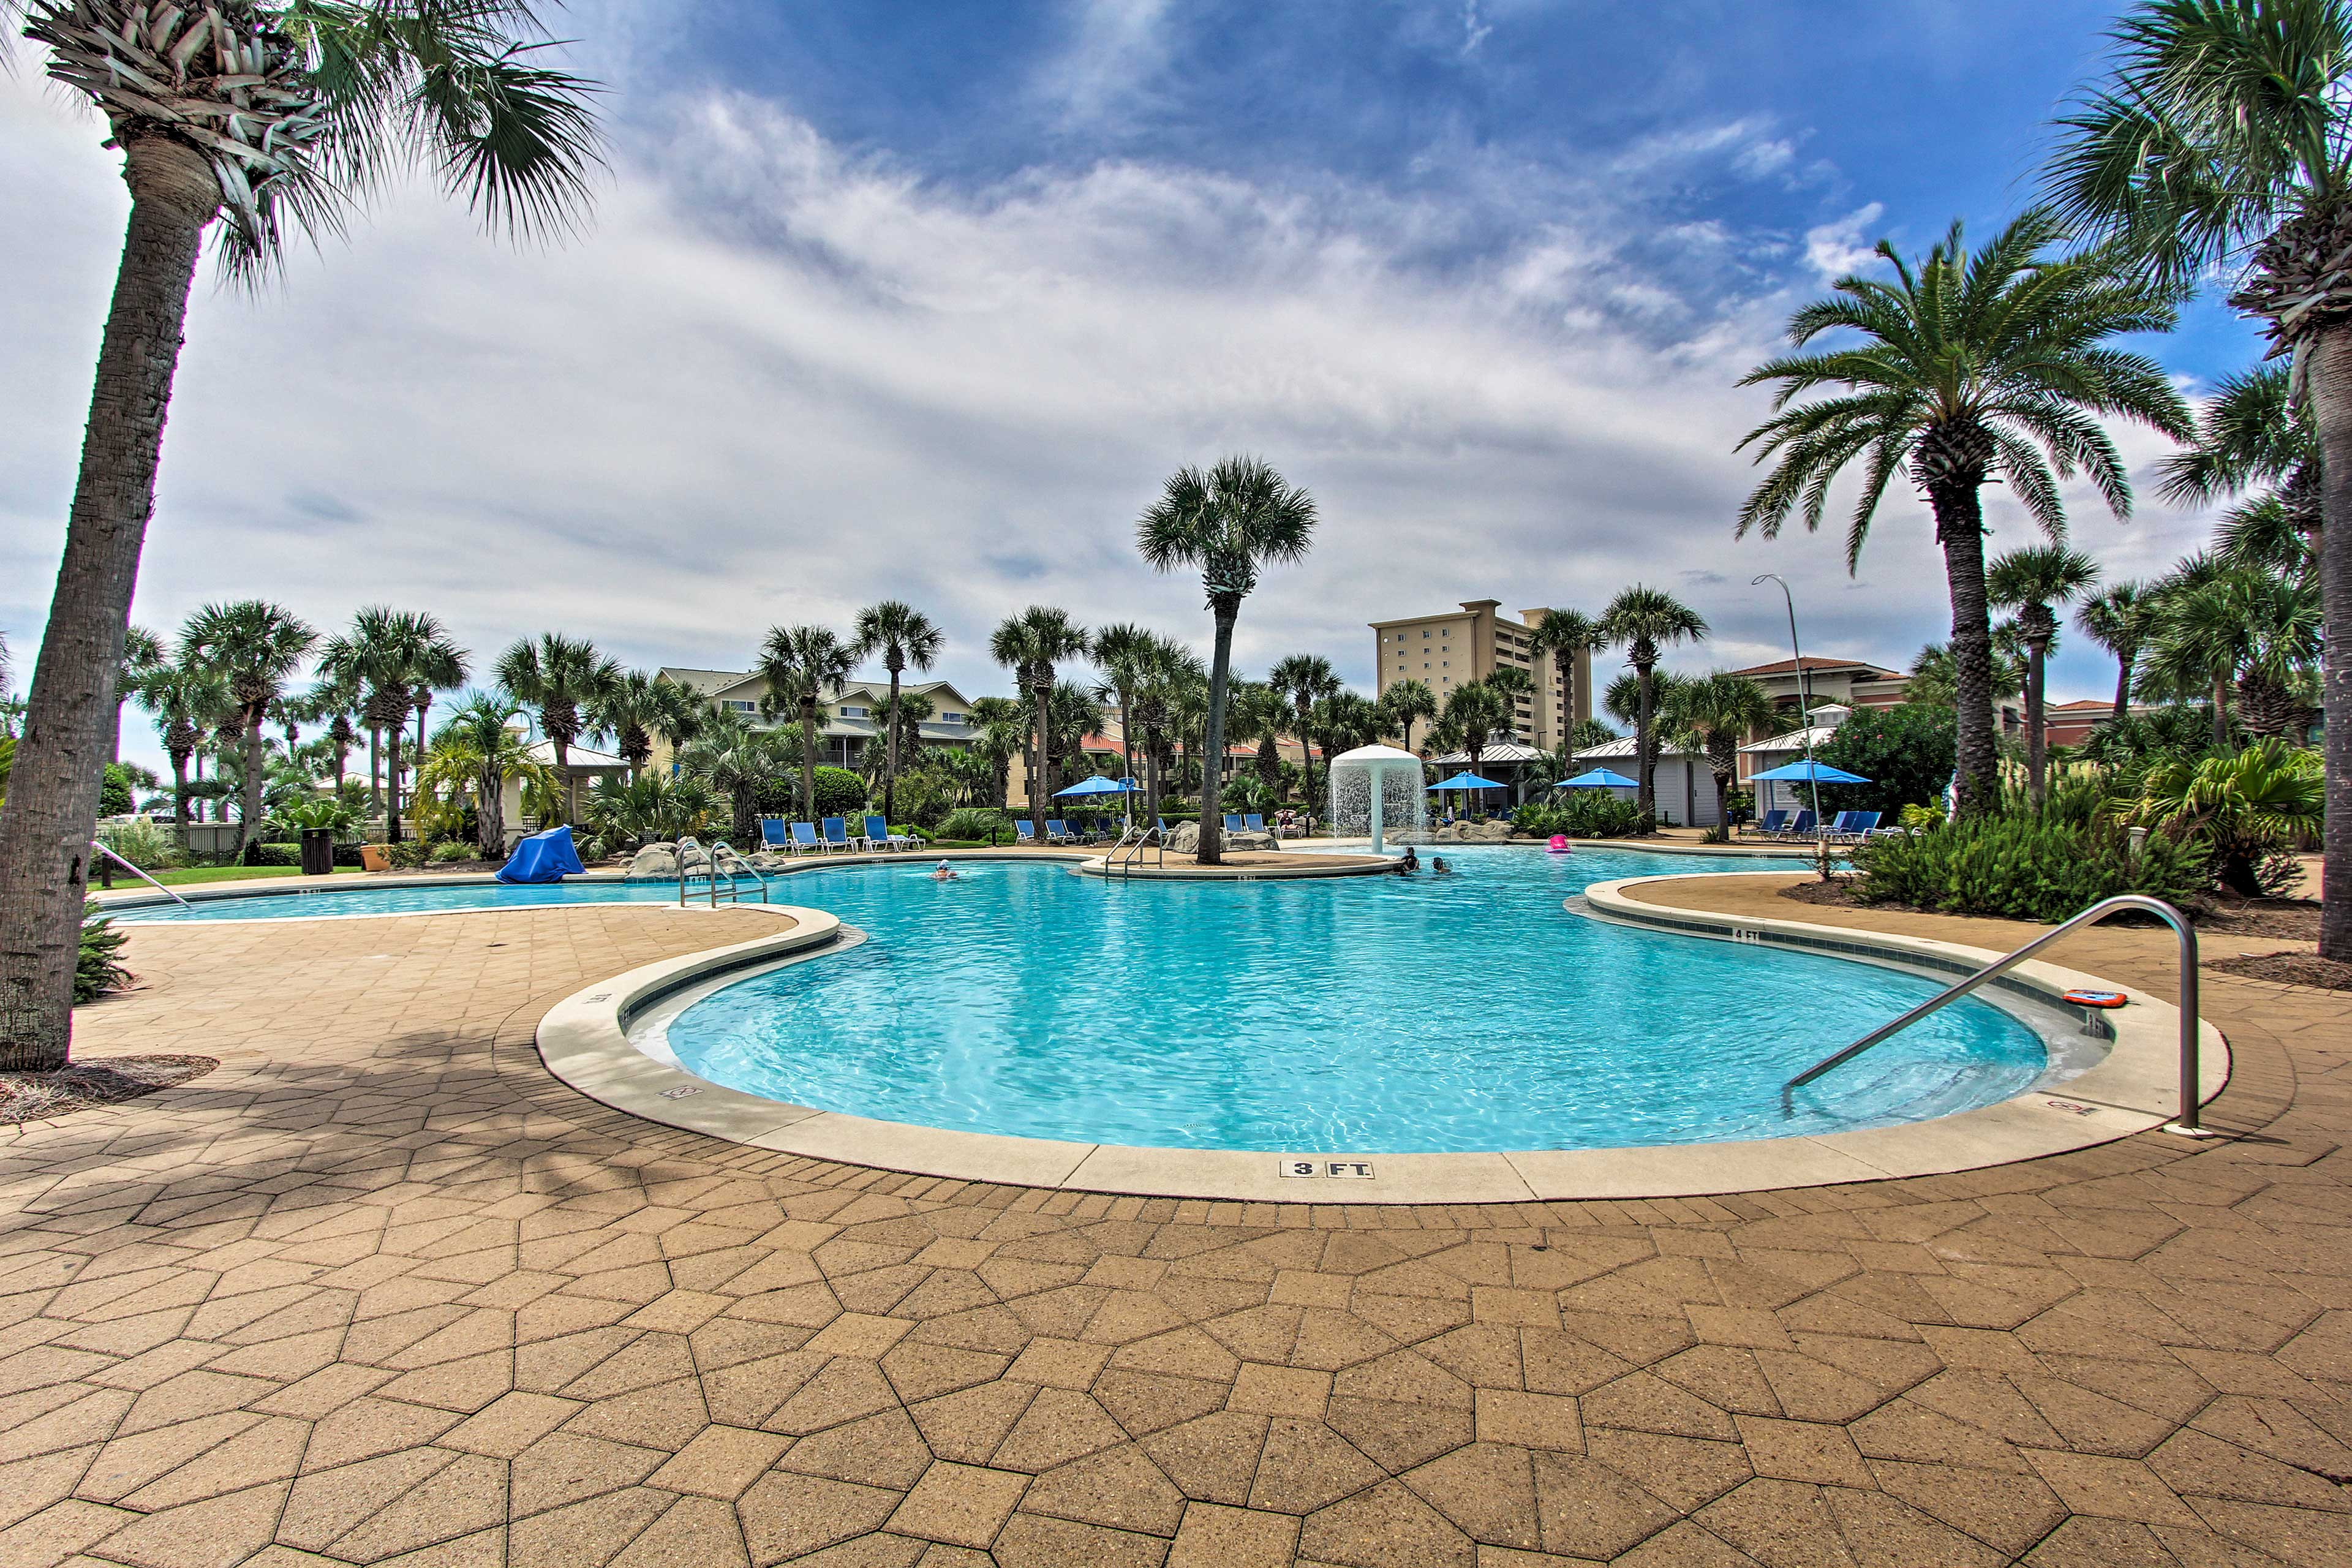 Hop in the community pool and unwind when you're not spending time on the beach!